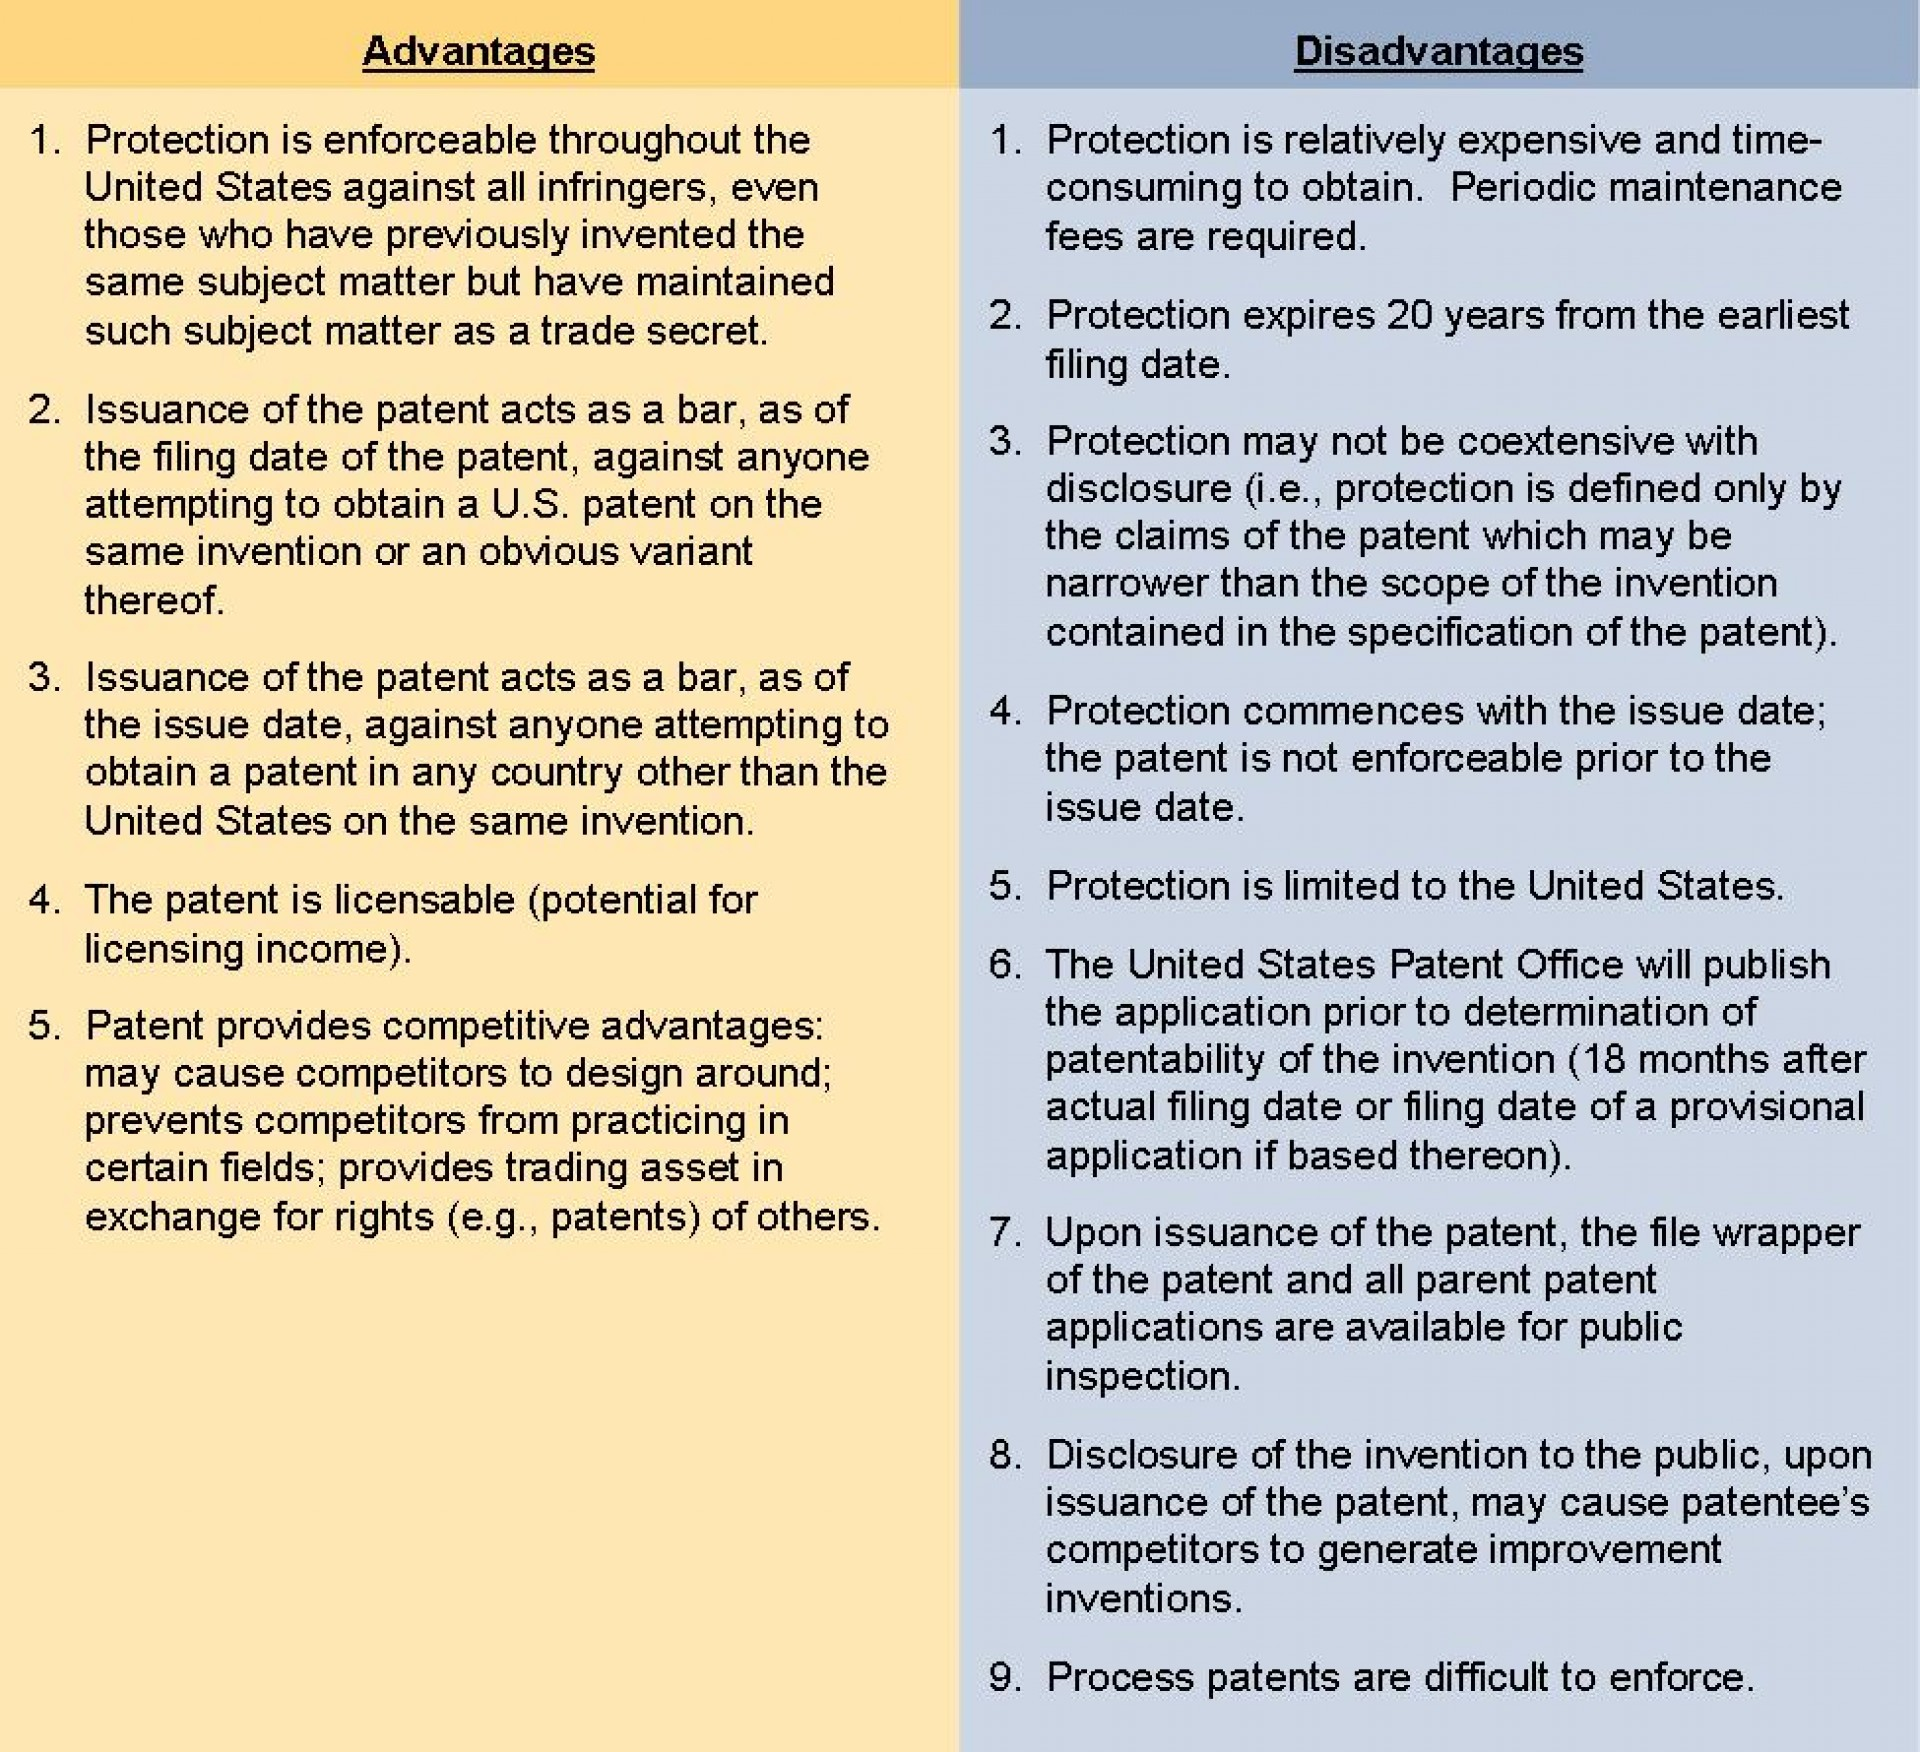 027 News87pic2 Advantage And Disadvantage Of Science Essay Shocking Advantages Disadvantages Pdf In Hindi English 1920